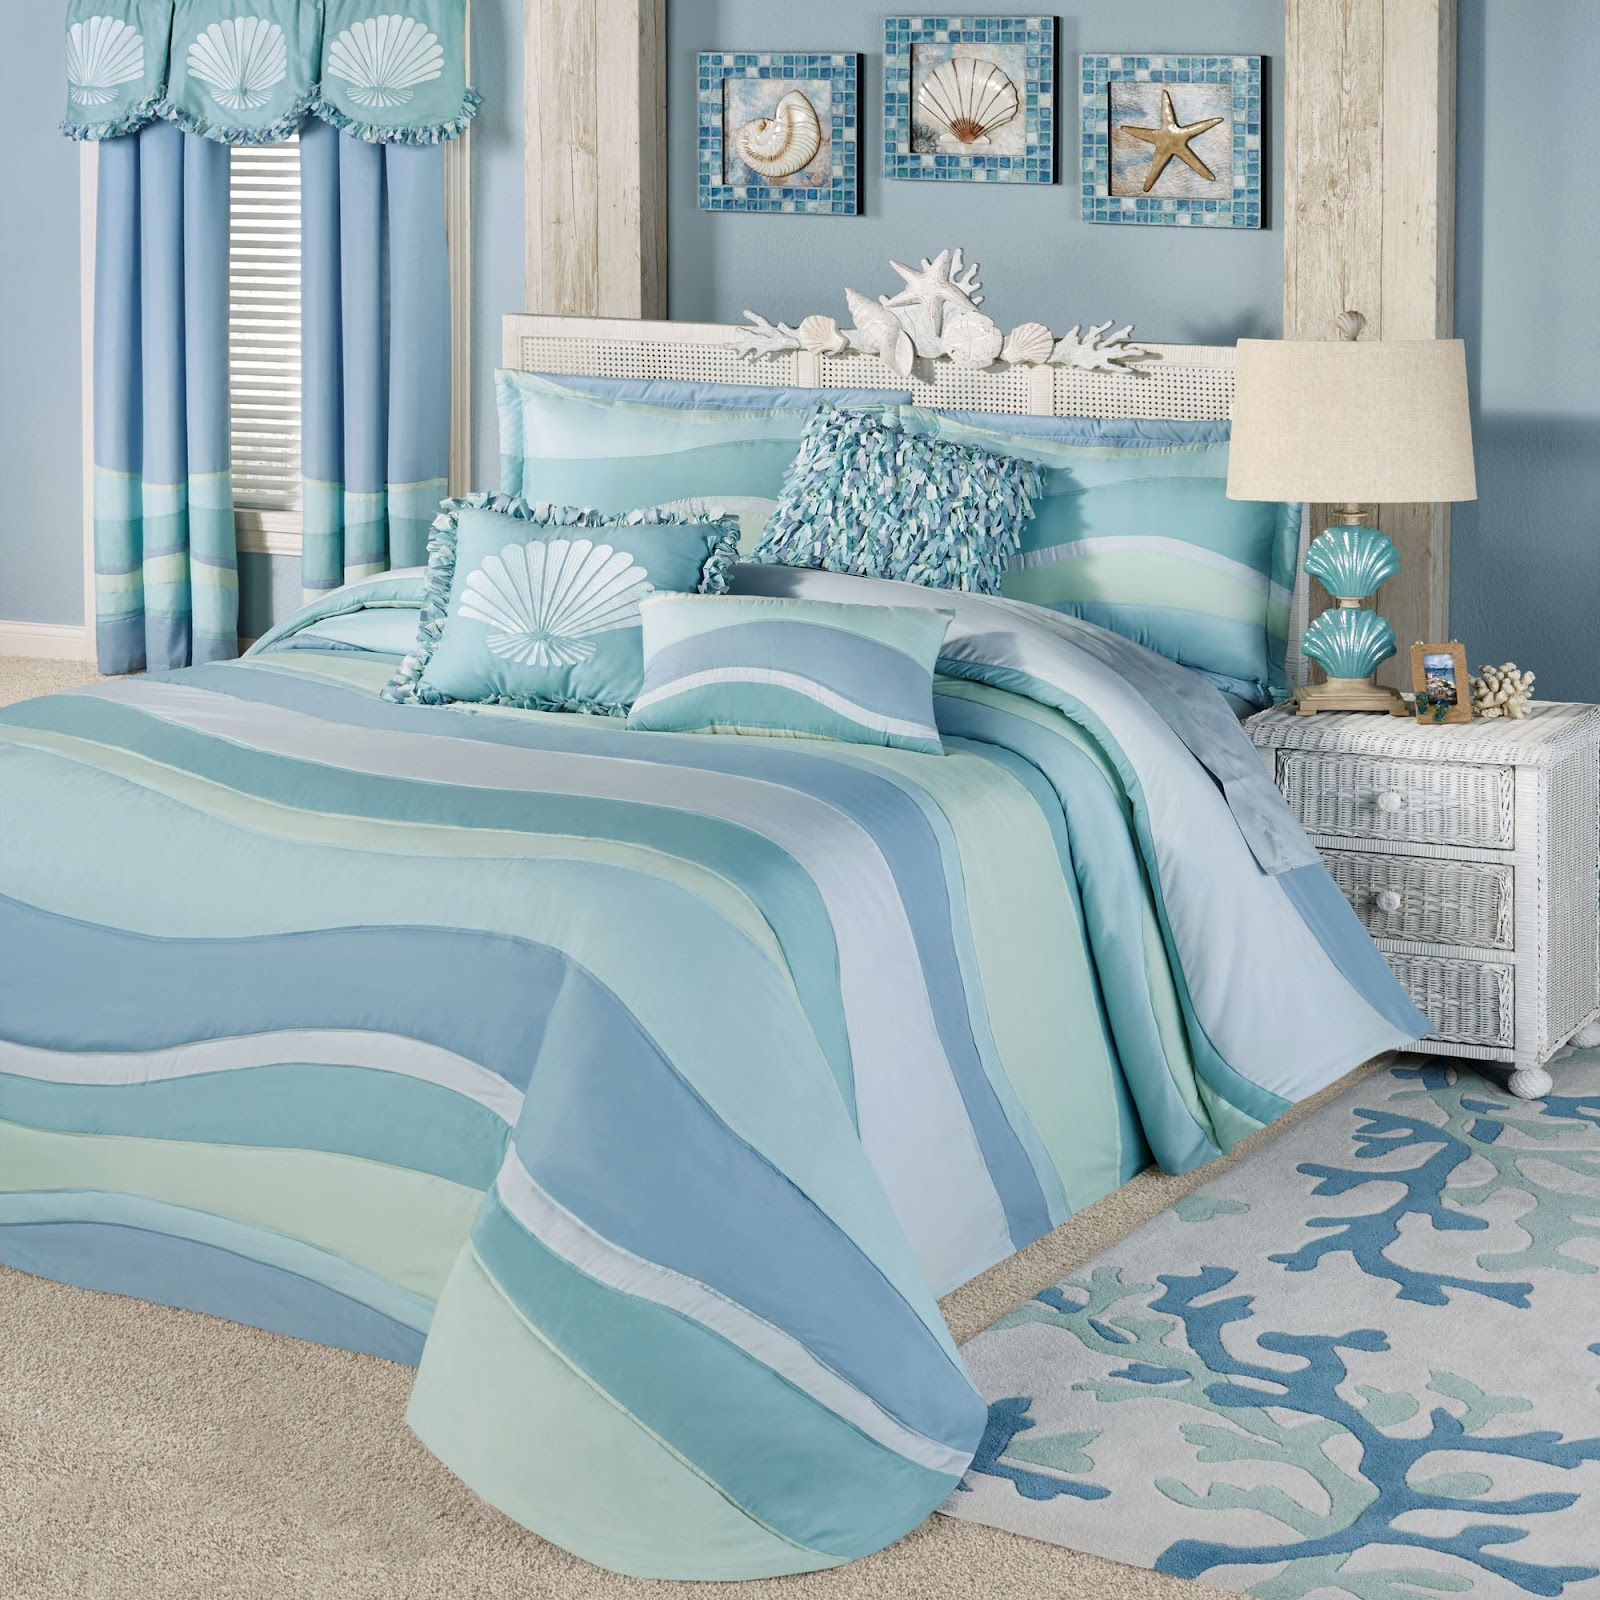 Beach Themed Bedroom with Bedding Sets